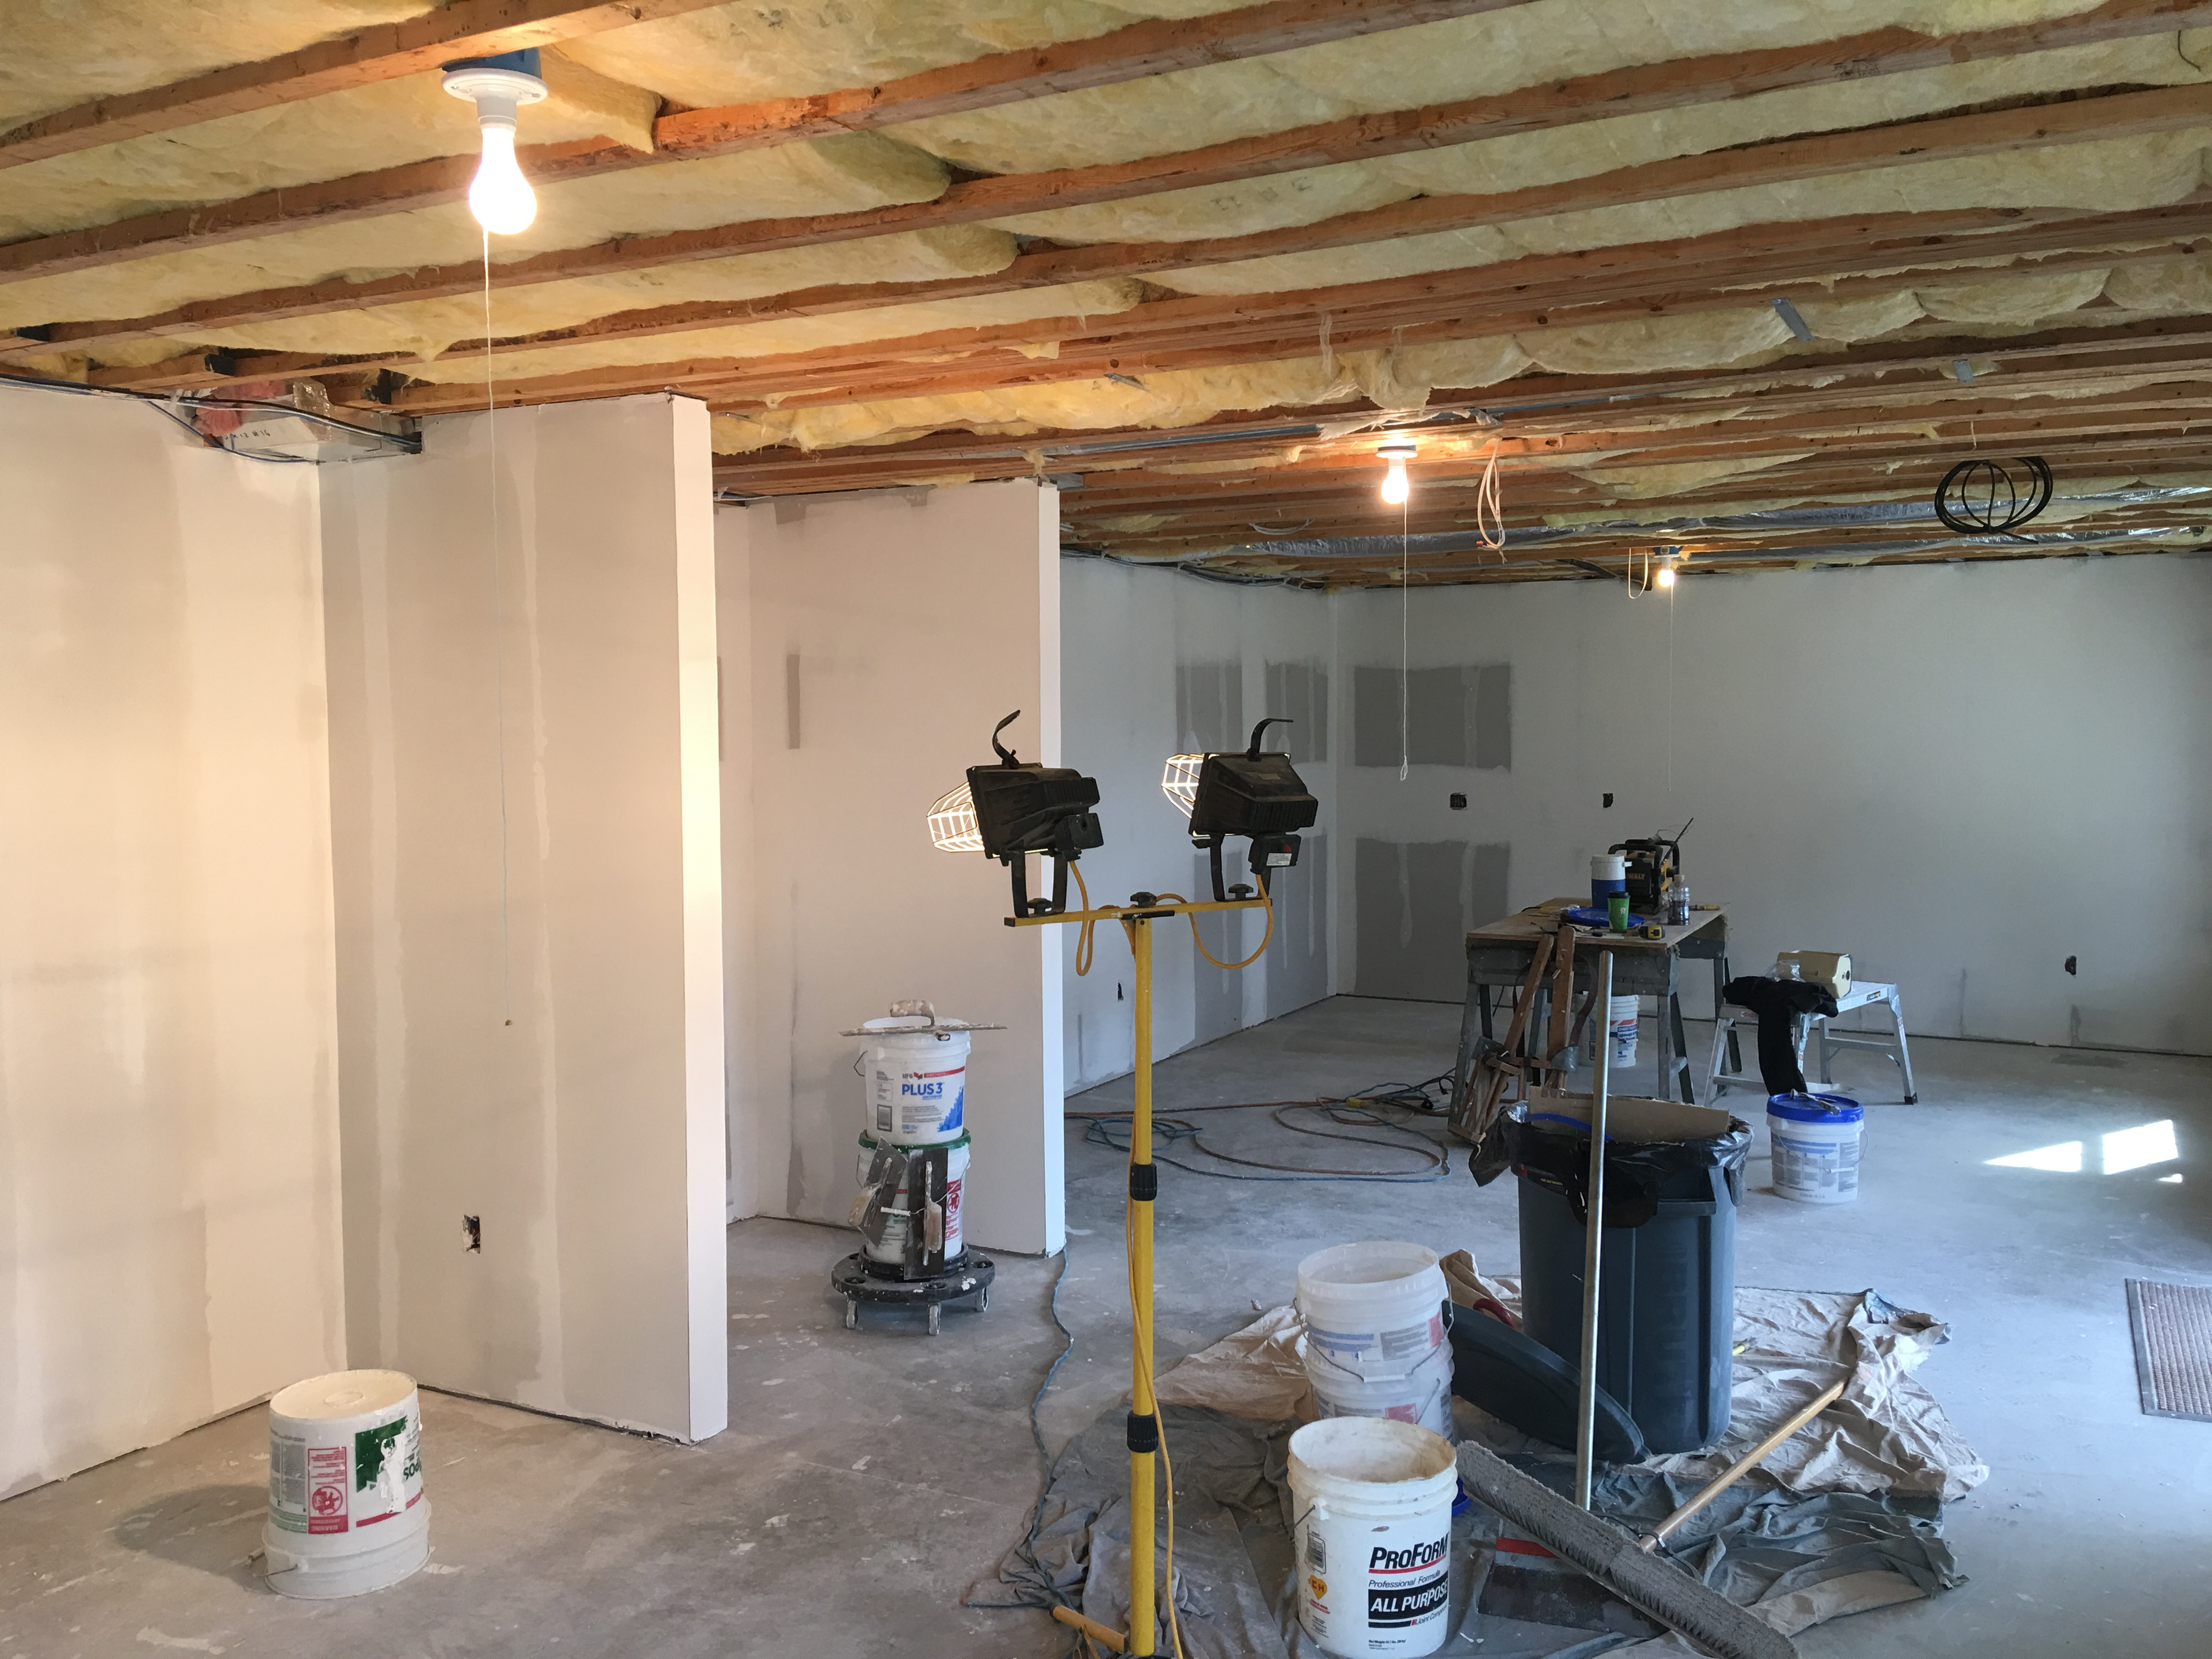 Finish basement skim coat level five-bb2af172-a02e-401c-b83e-5be9d7129acb.jpeg